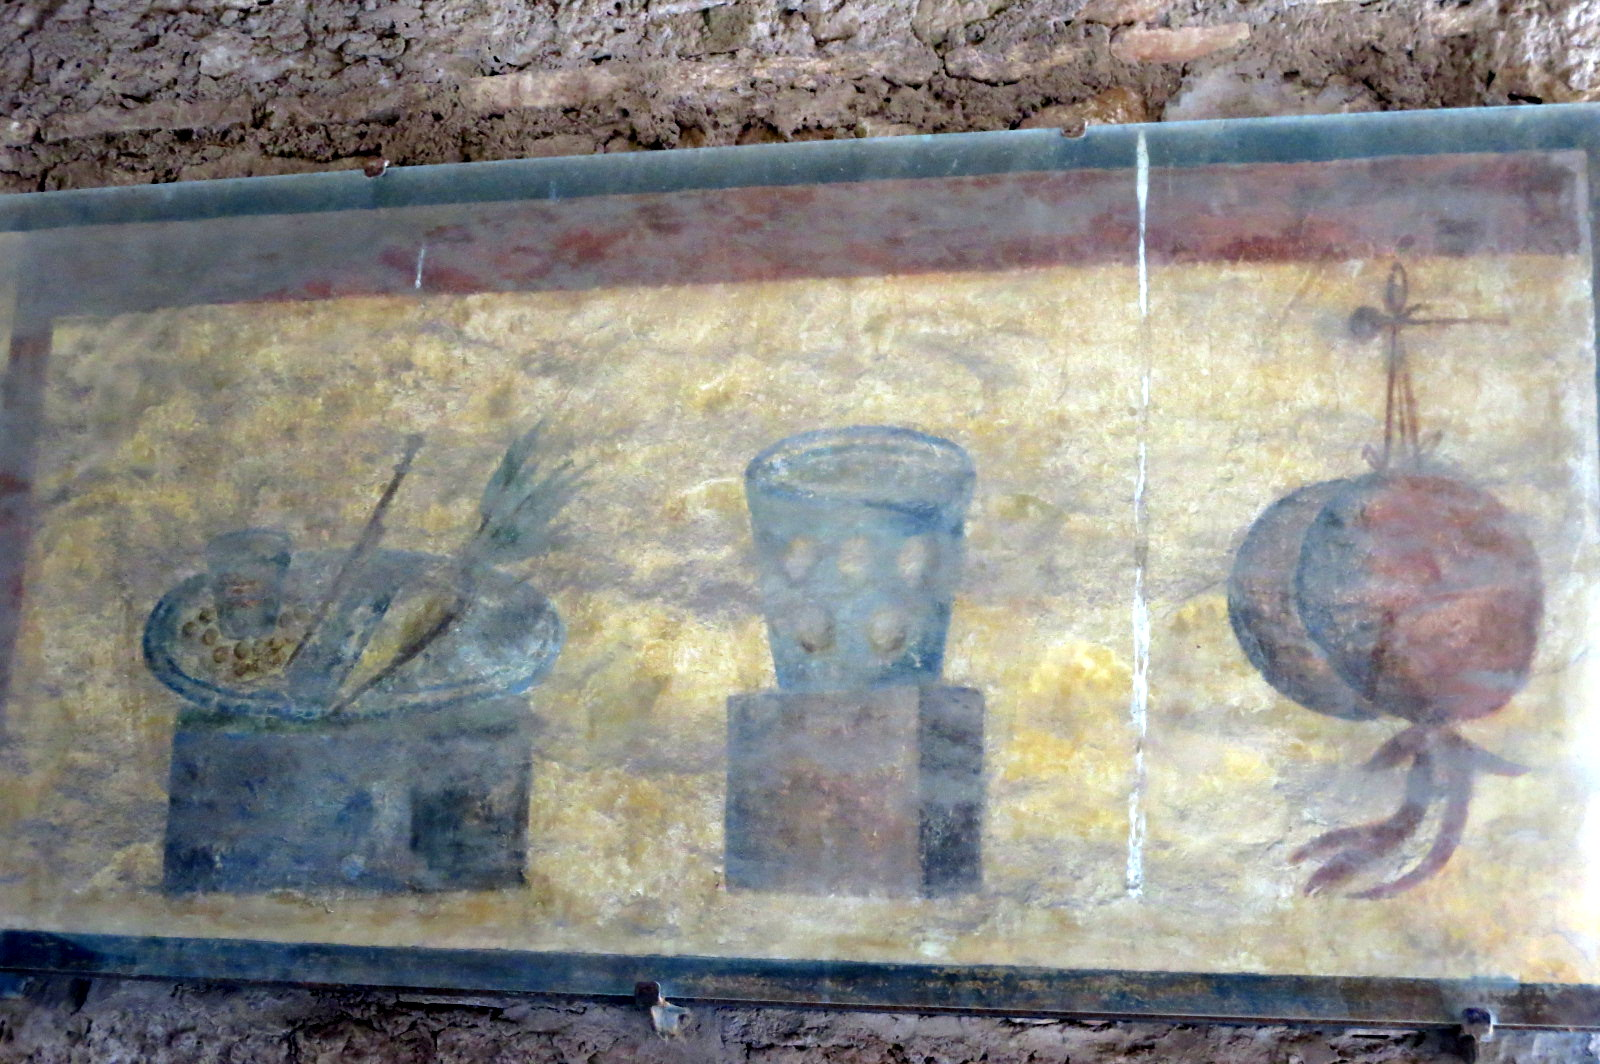 taberna menu in Ostia Antica, Crystal King c 2013